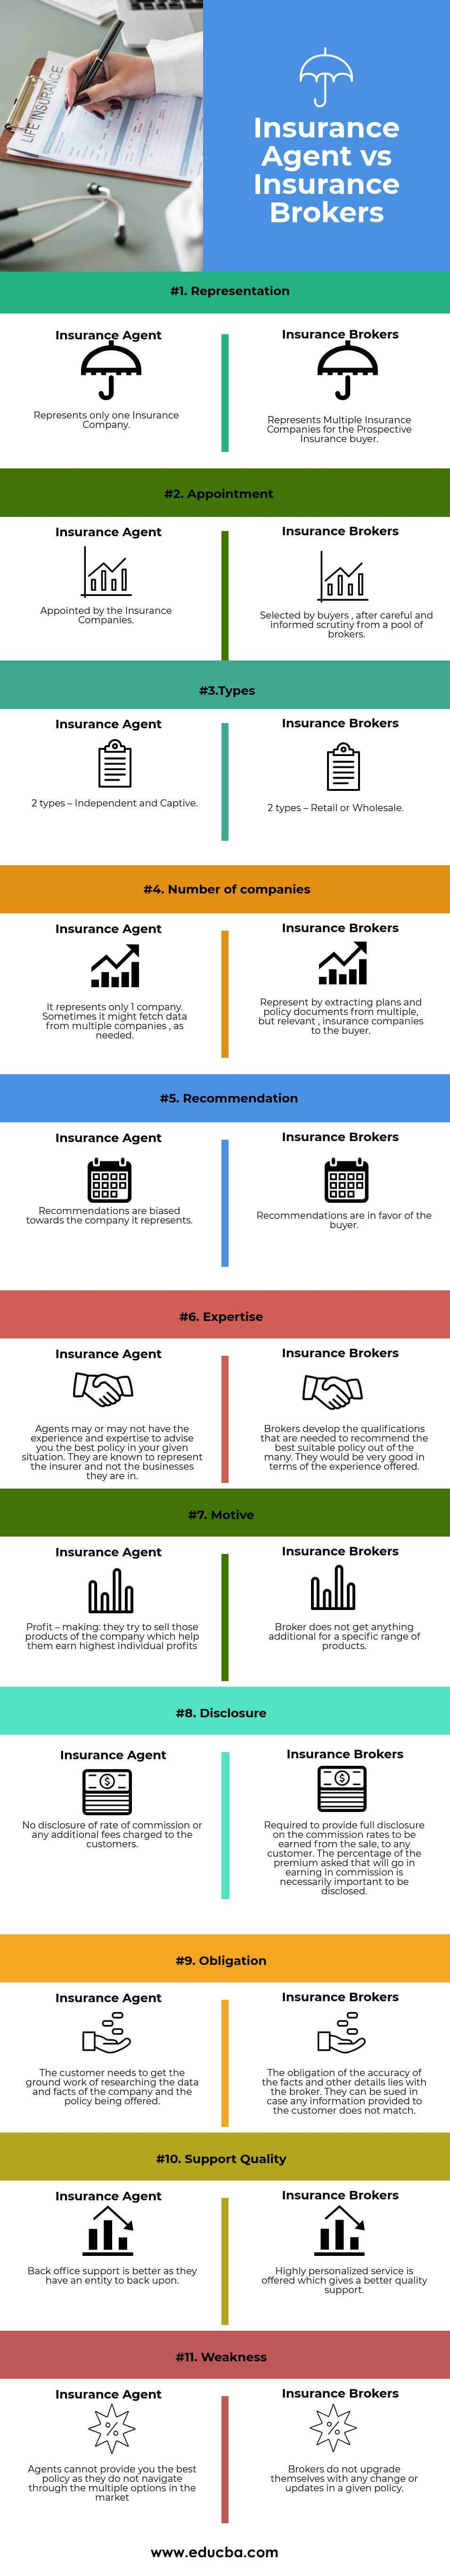 Insurance Agent vs Insurance Brokers (info)